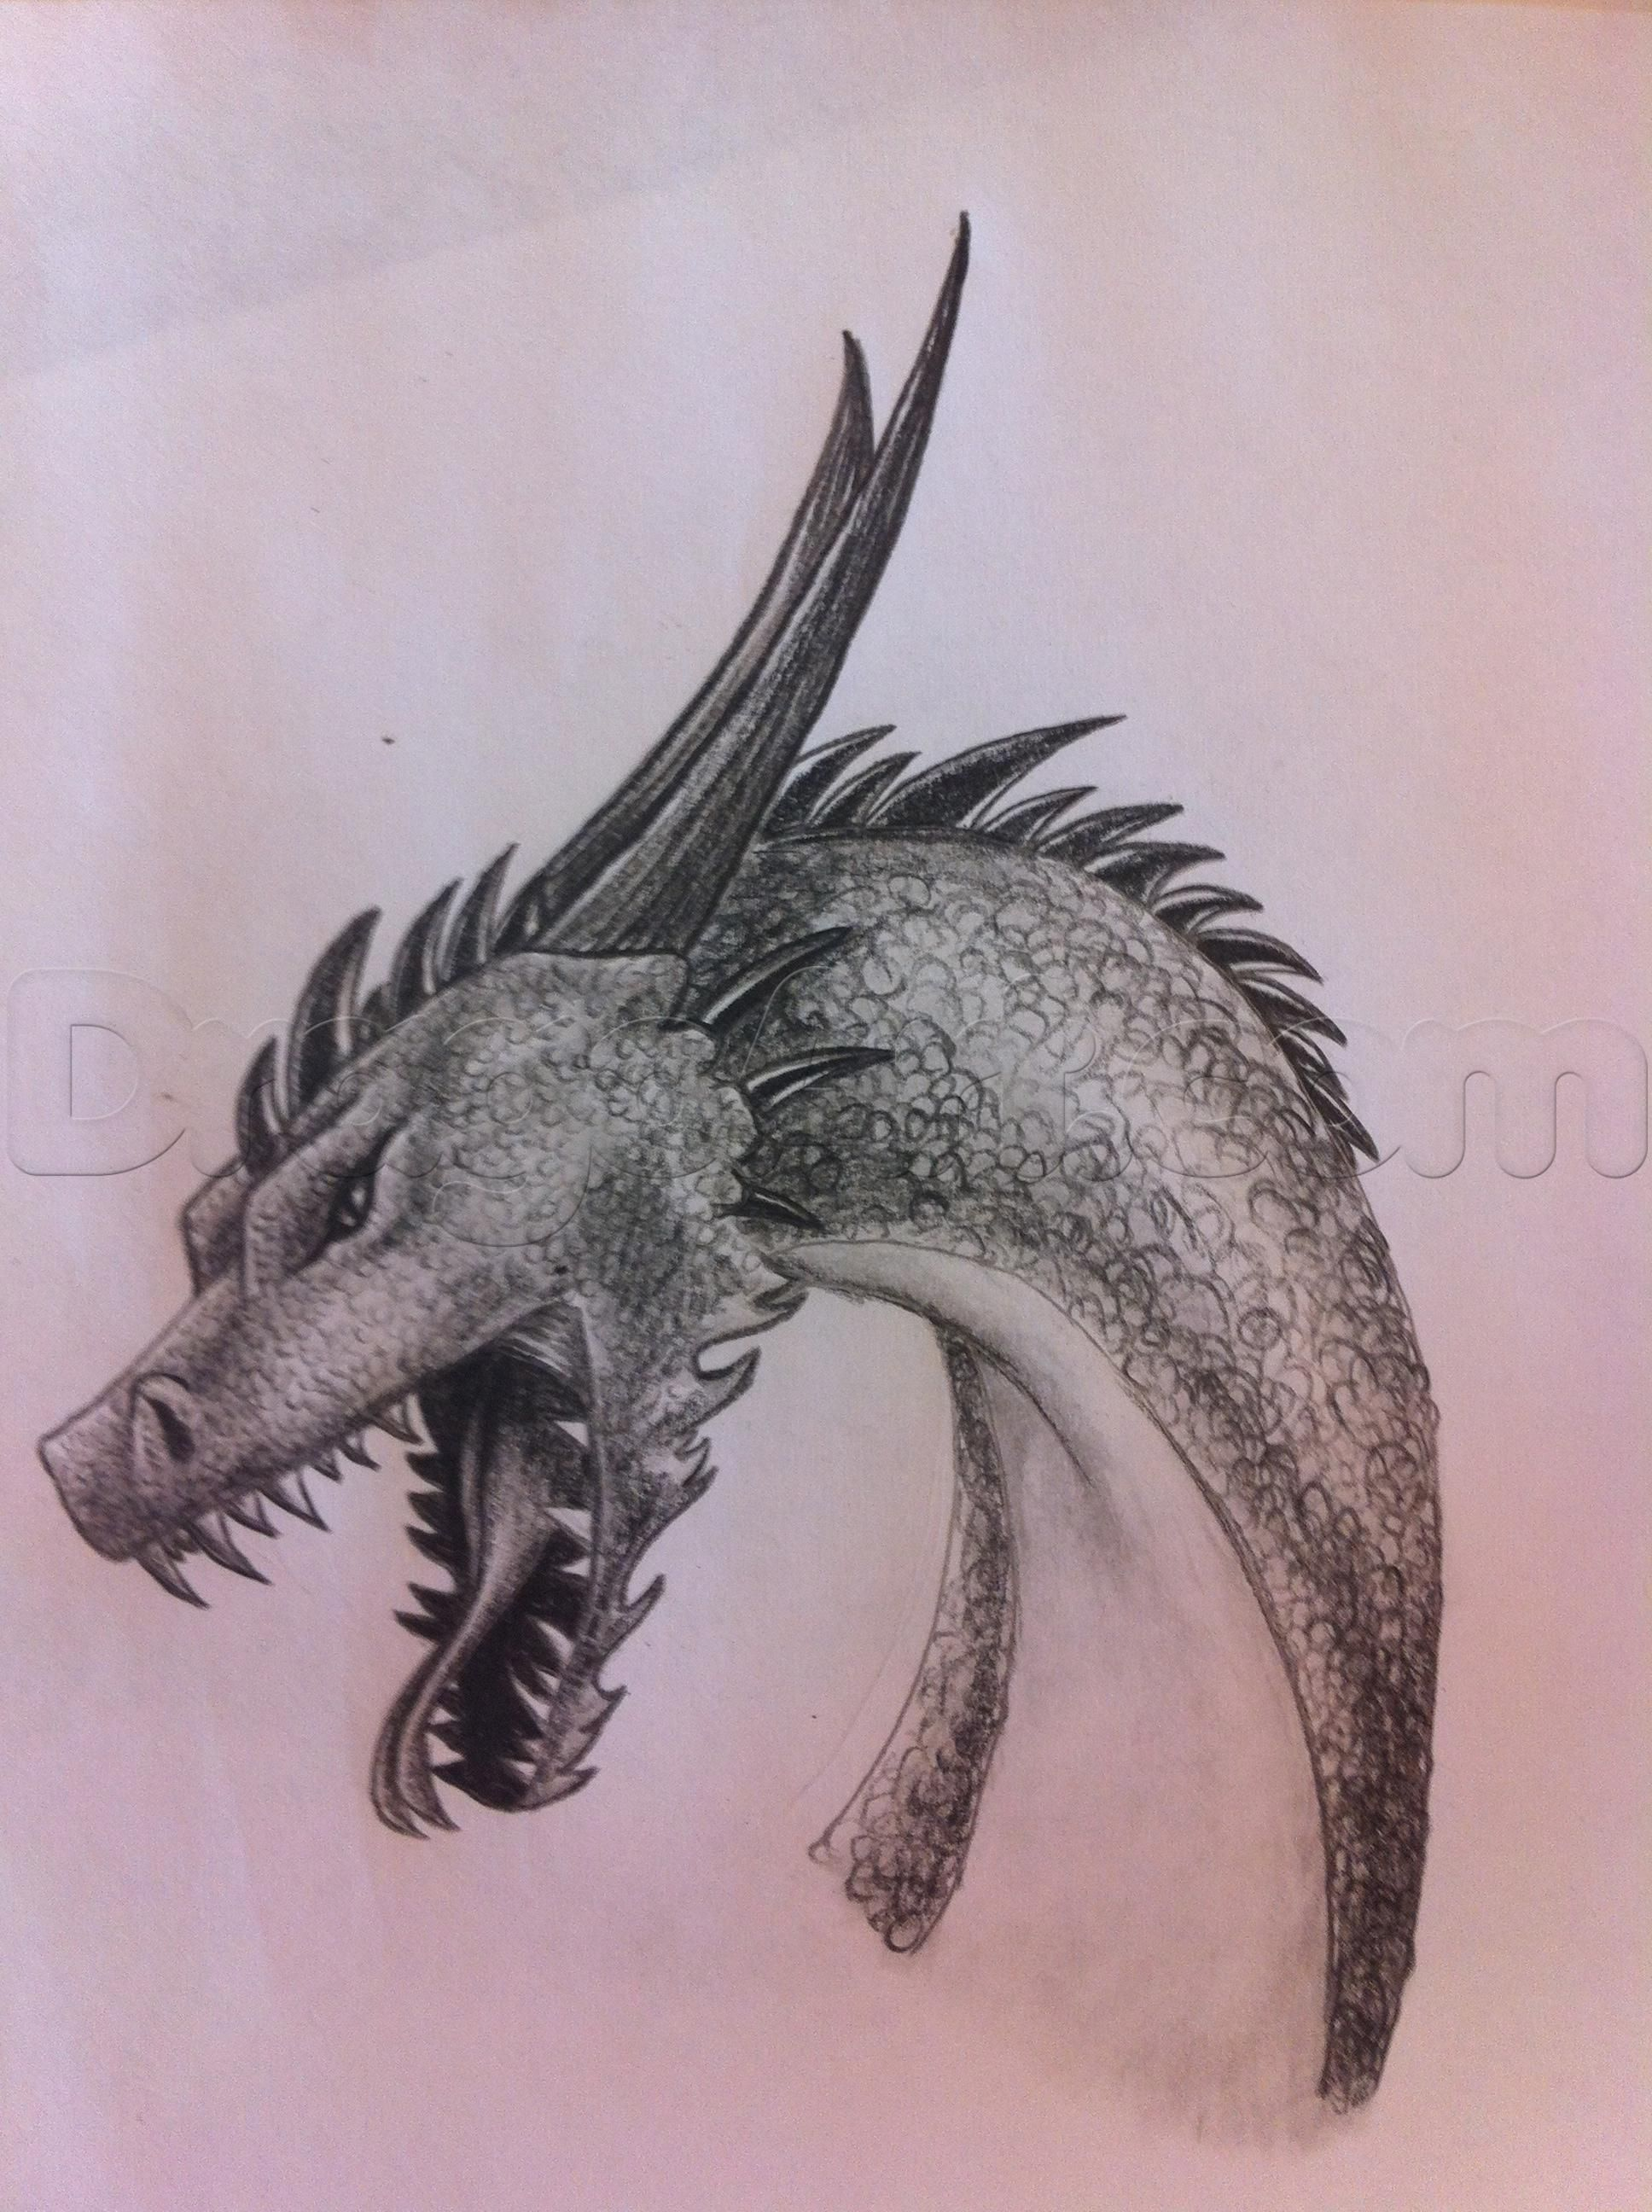 Howtodrawadragonheadstep11_1_000000029841_5g 900�857 Pixels   Drawings  Pinterest  Tattoo Ideas, How To Draw Dragons And Dragon Drawings